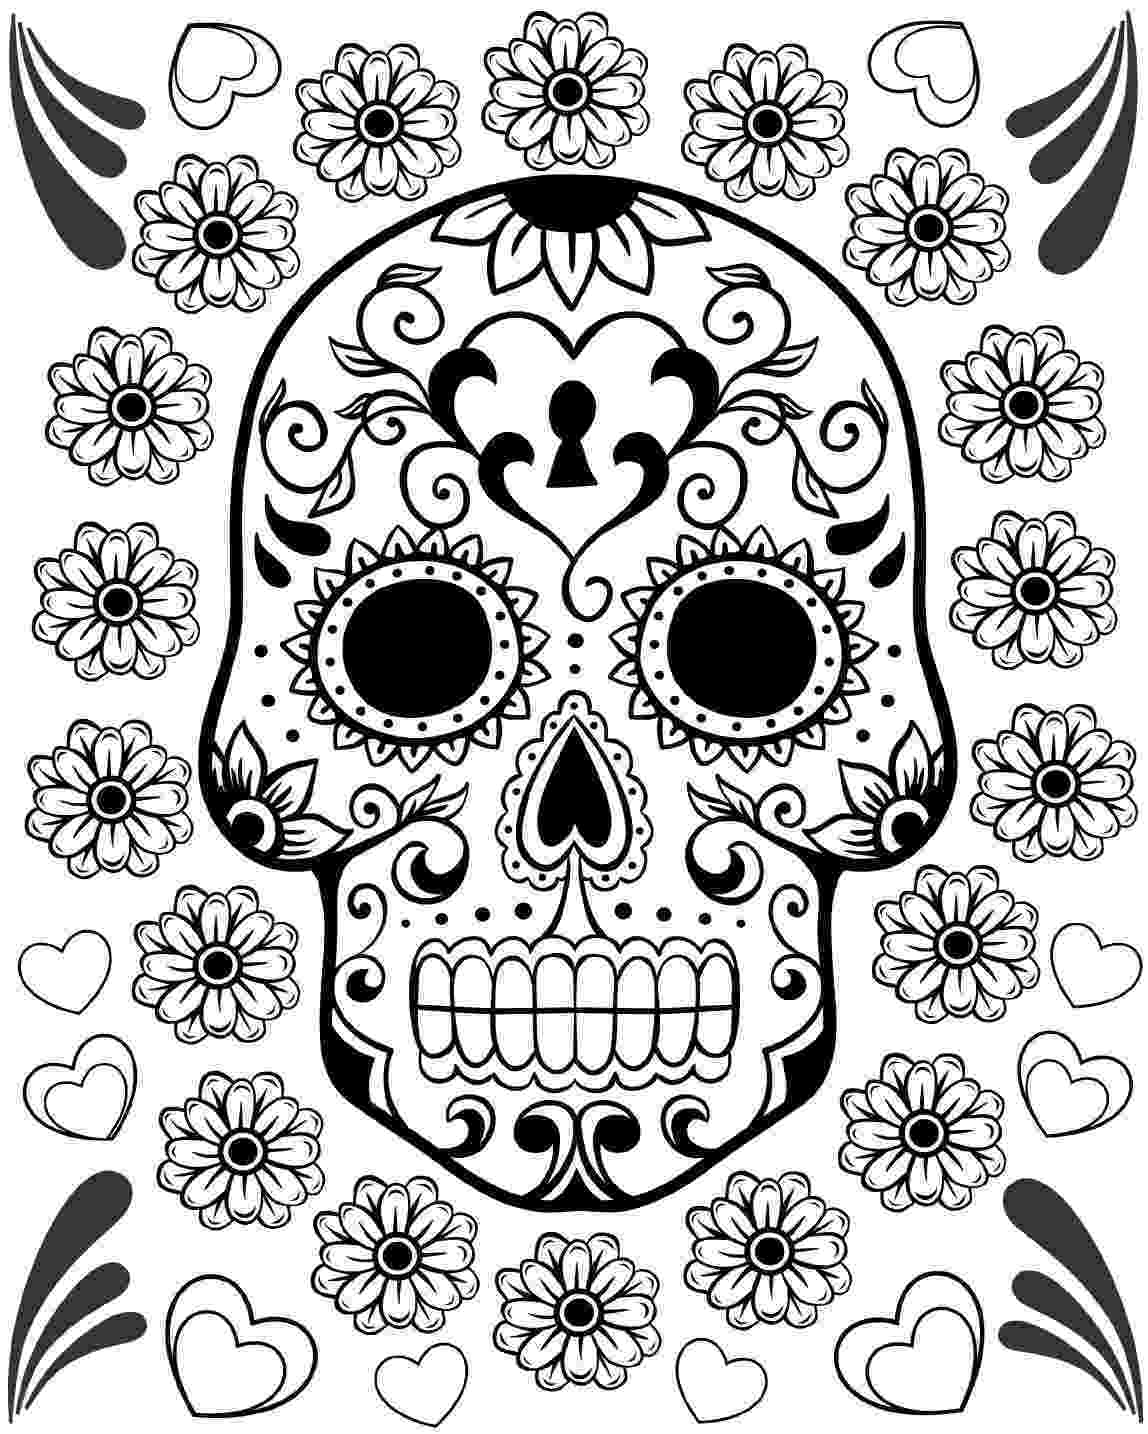 coloring pages for adults day of the dead 10 more sugar skull day of the dead original art coloring book adults the day for dead pages of coloring